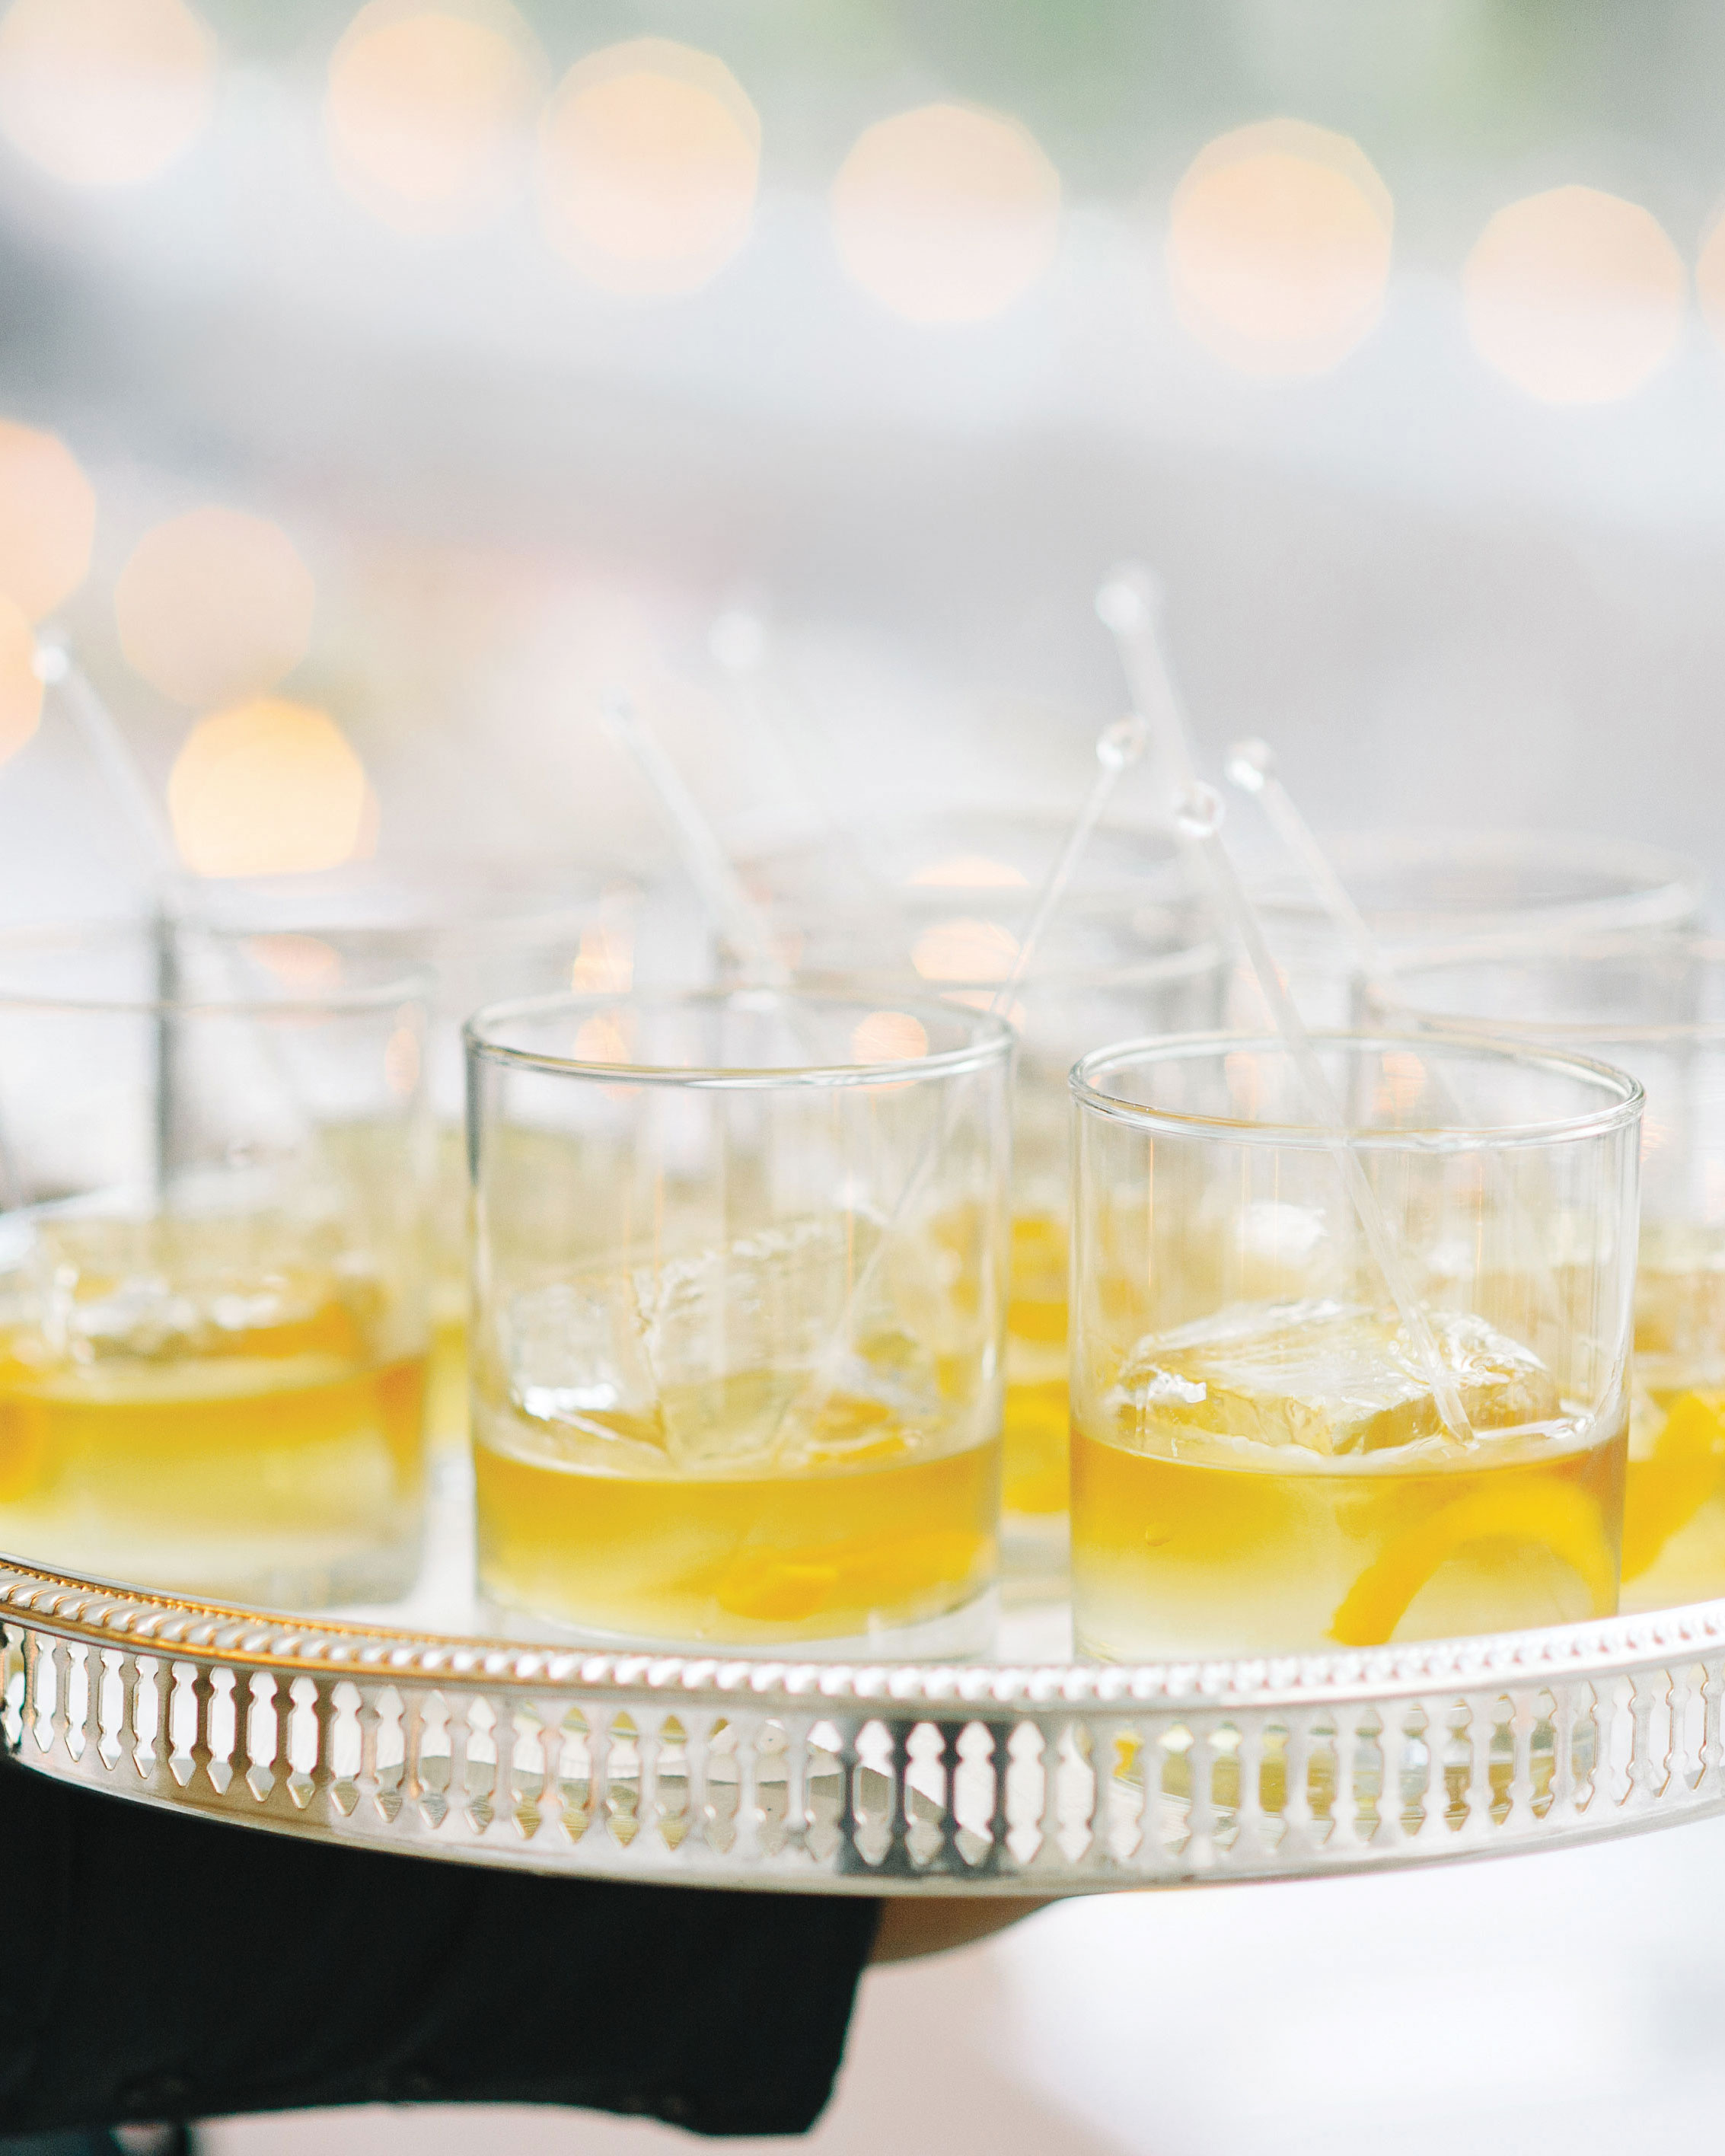 mamy-dan-wedding-canada-details-old-fashioned-cocktails-062-s112629.jpg